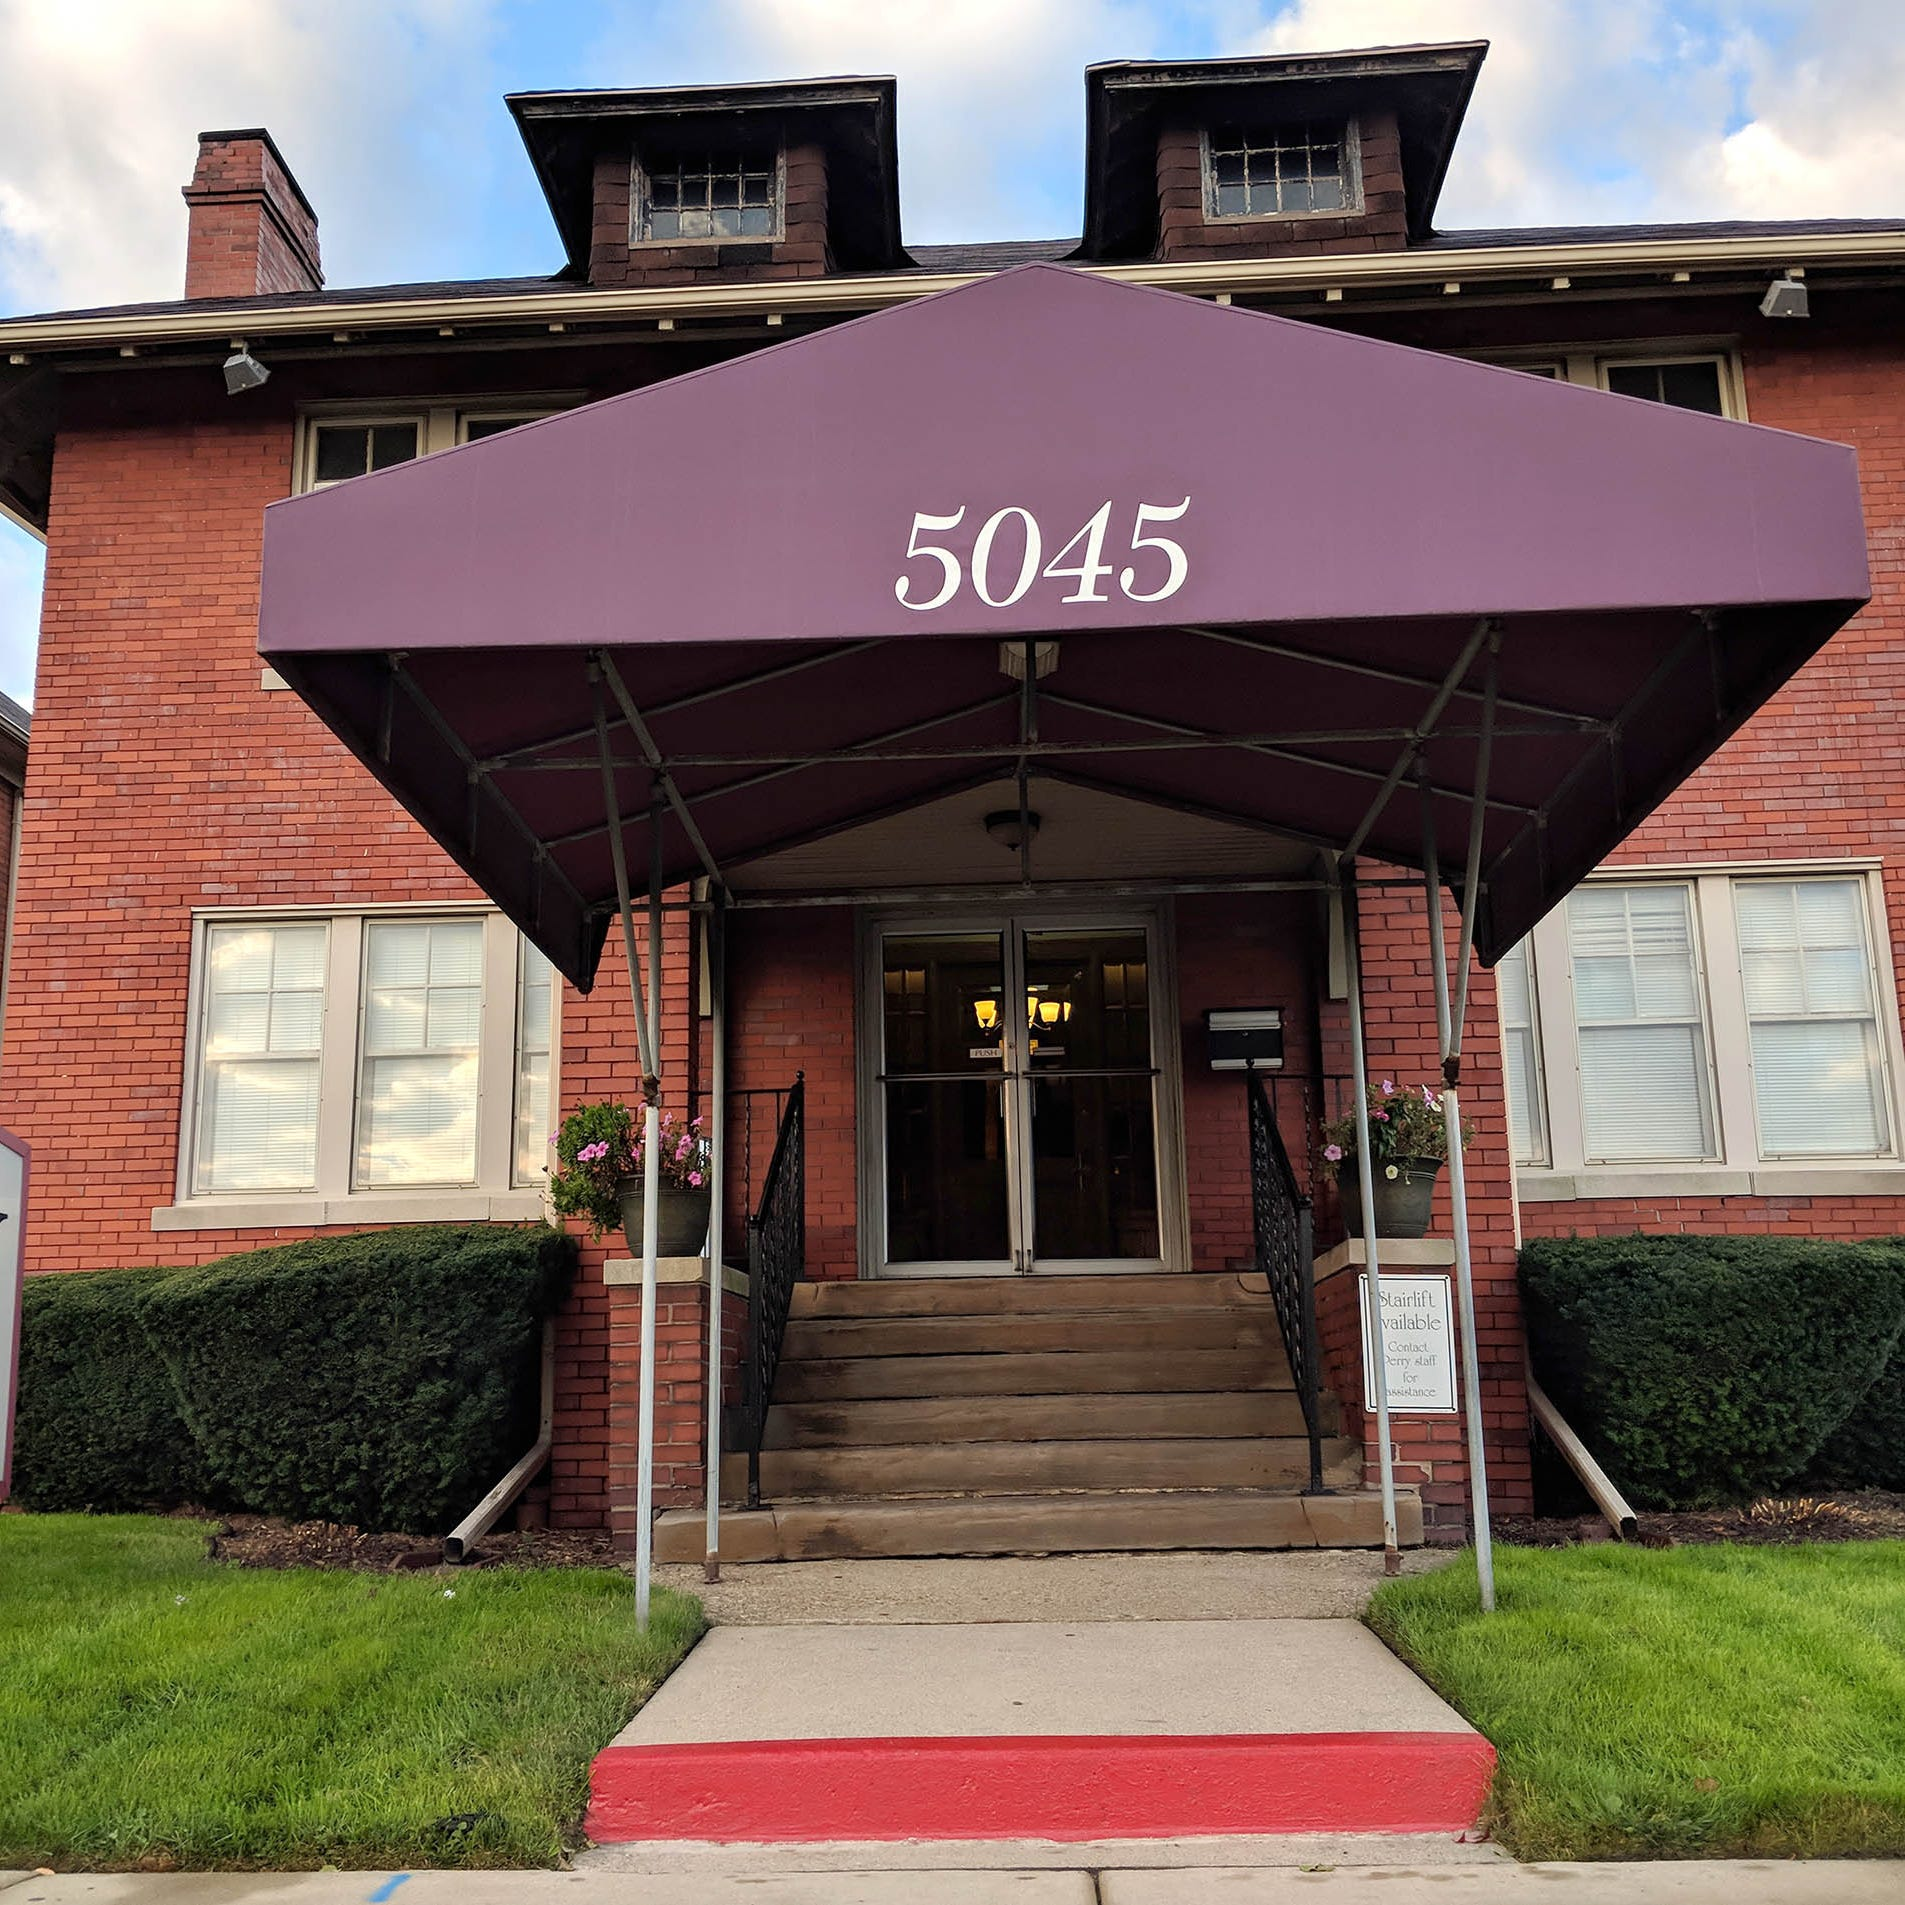 Lawsuit may help explain remains of 63 fetuses found in Detroit funeral home